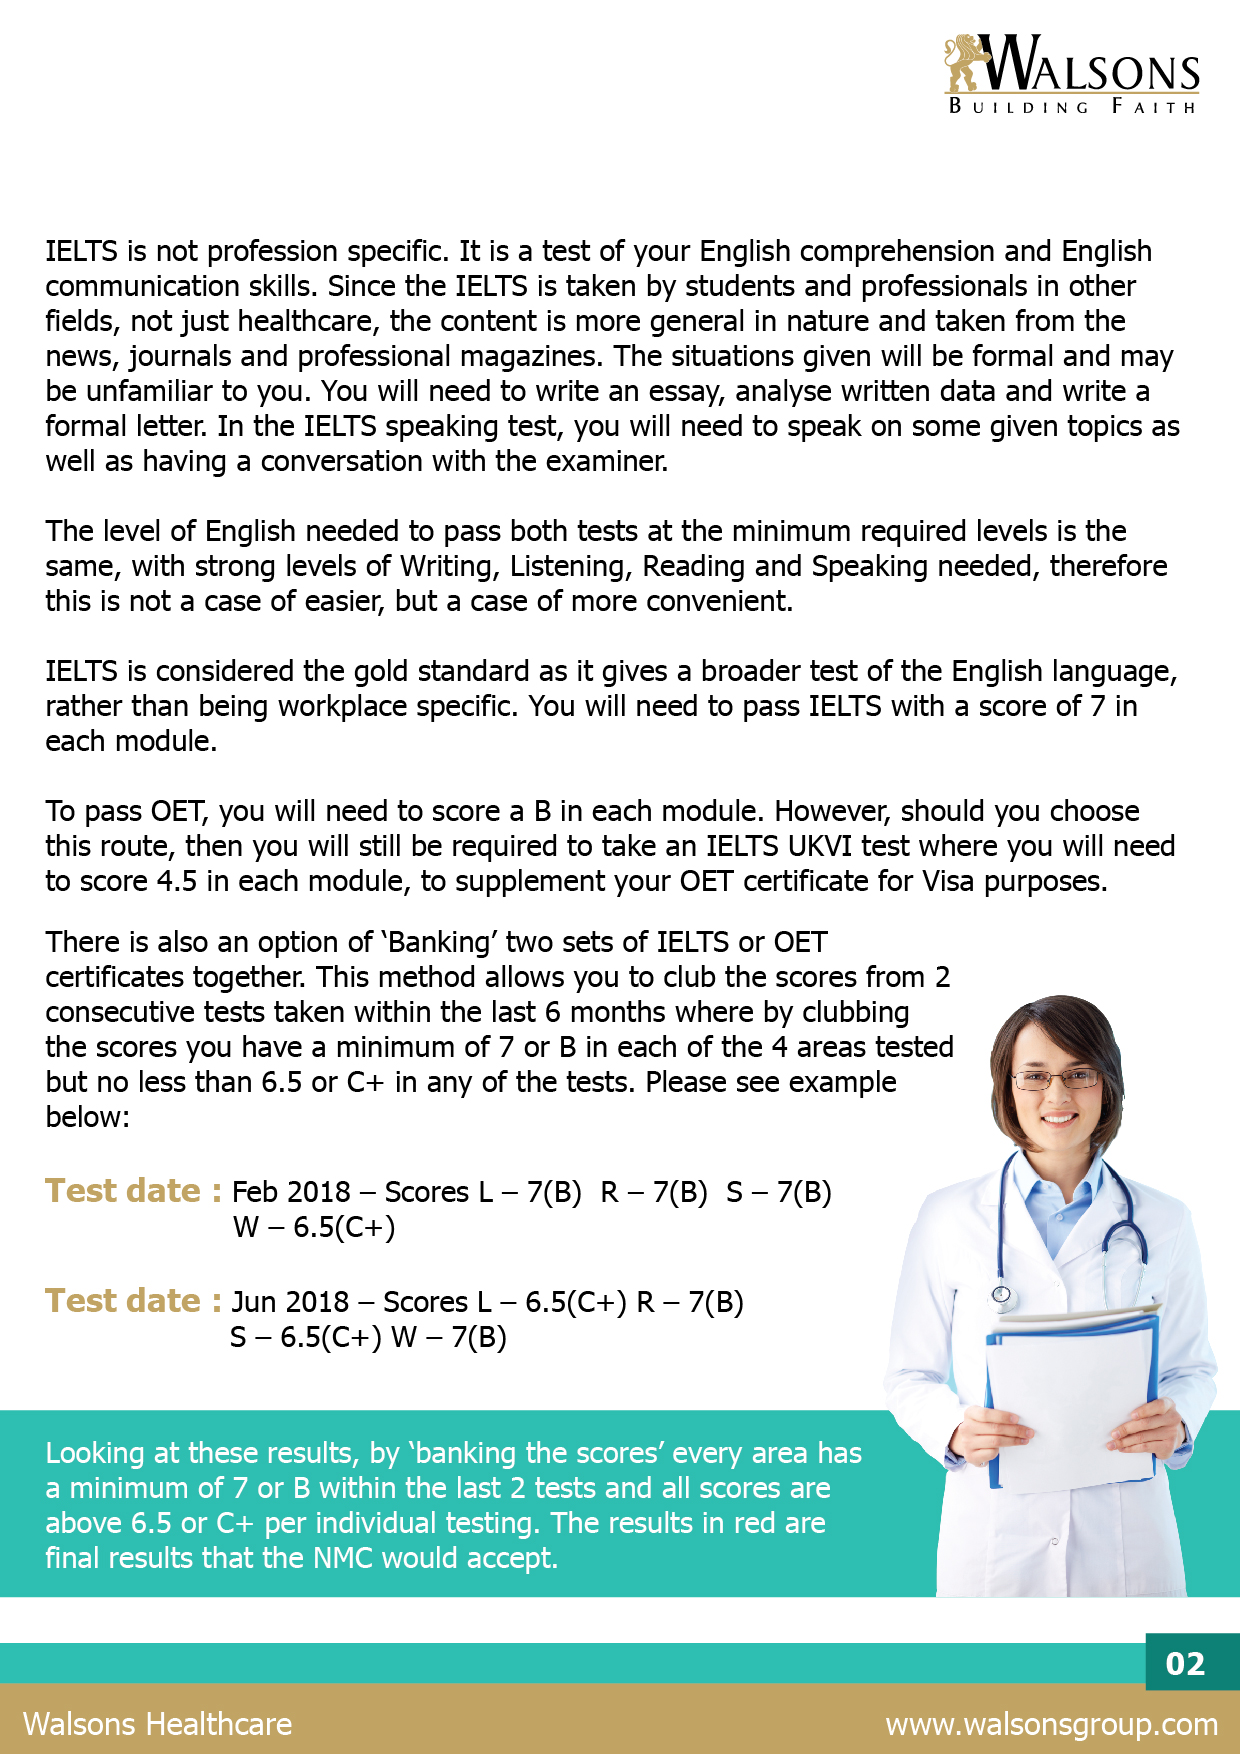 OET vs IELTS, Confused about what to choose? – Walsons Healthcare